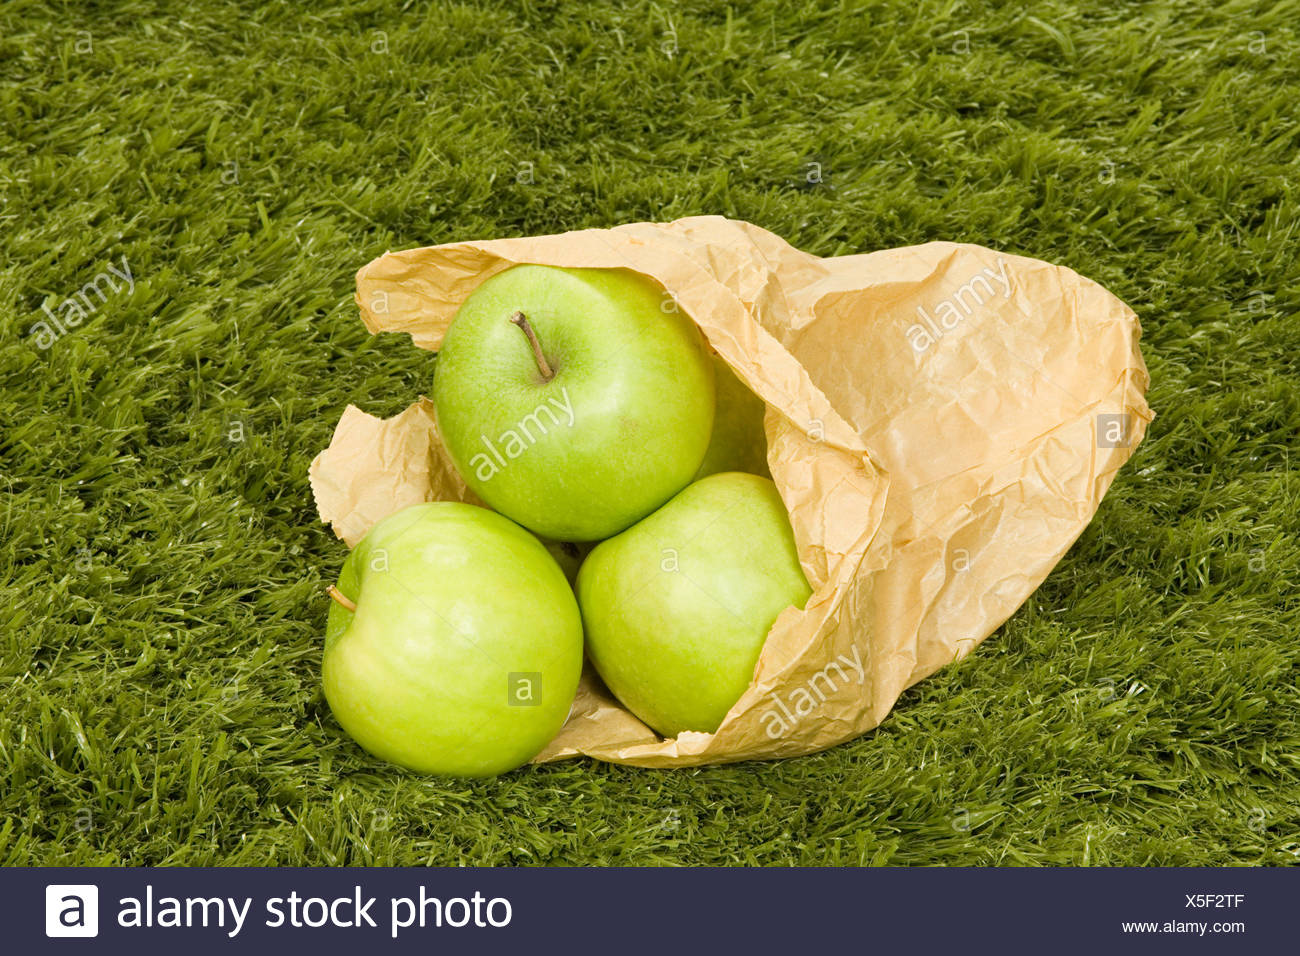 Apples in a paper bag - Stock Image